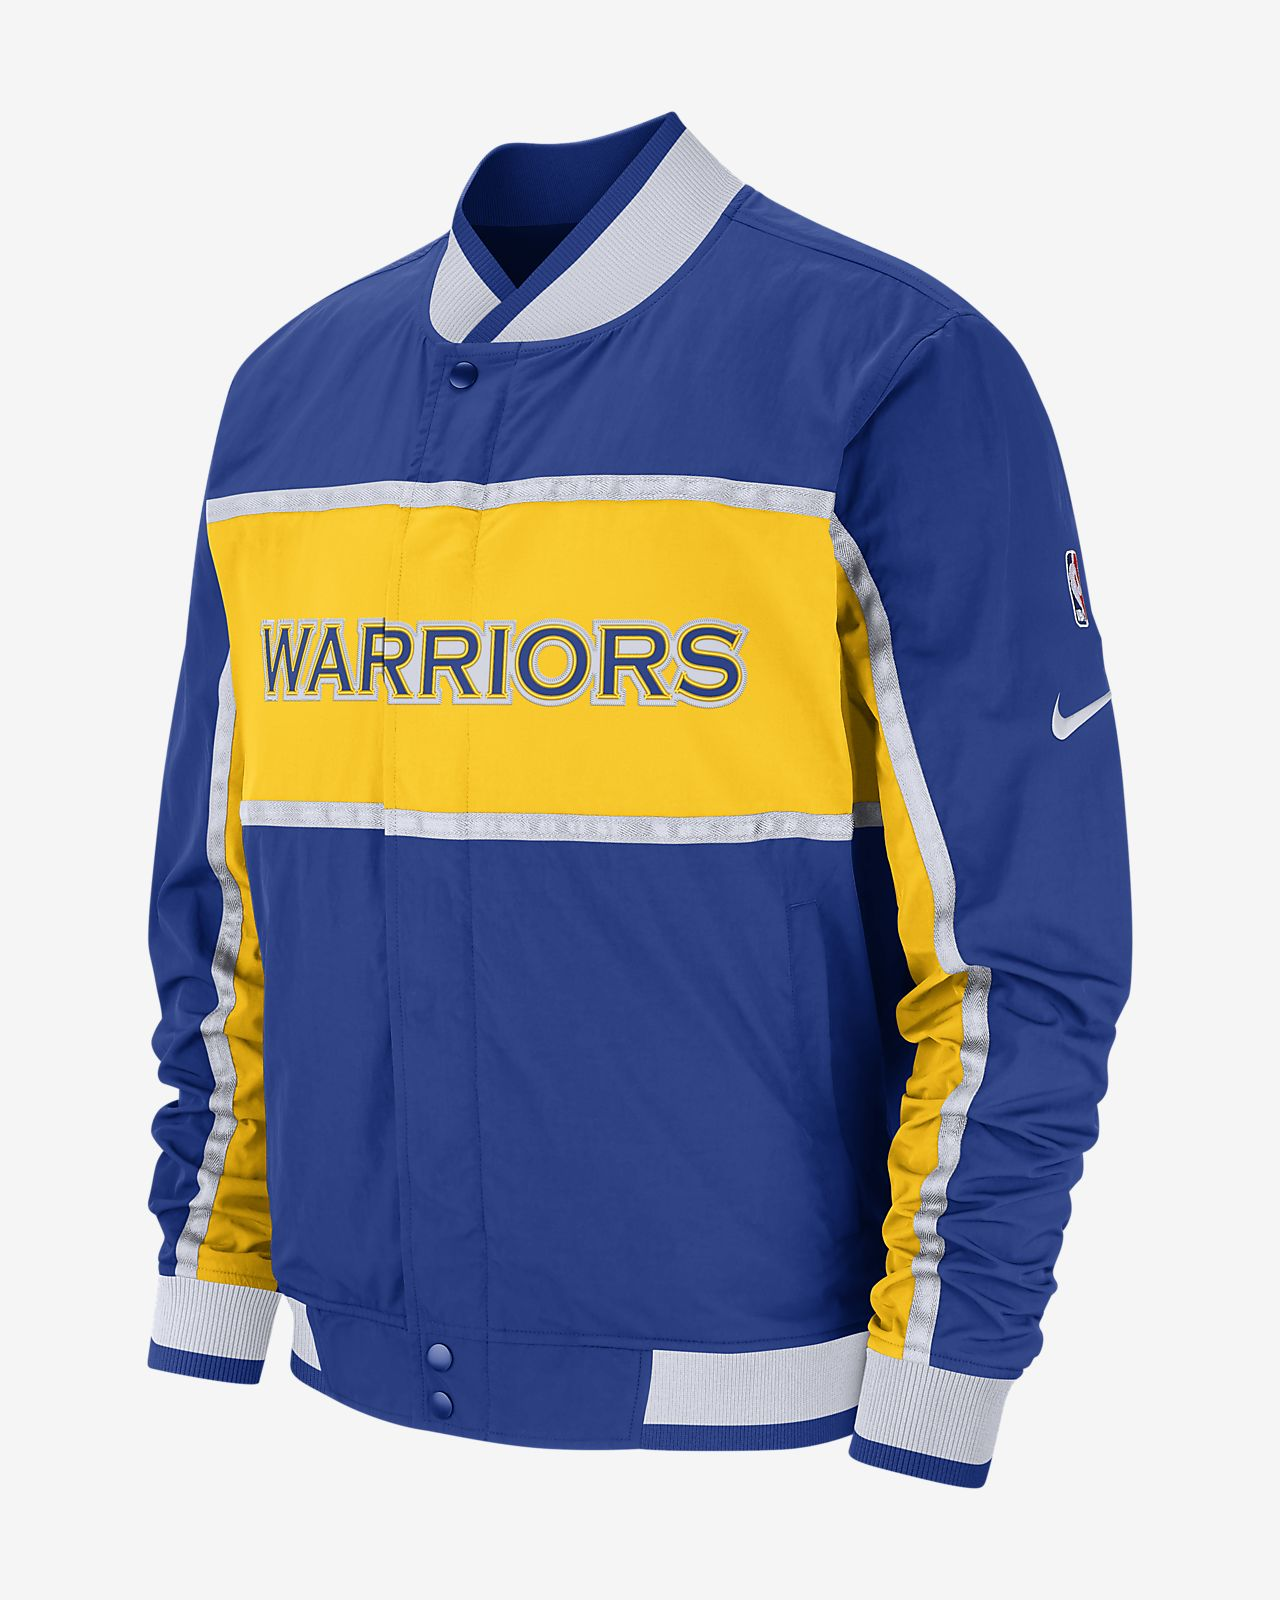 Golden State Warriors Nike Courtside Men's NBA Jacket